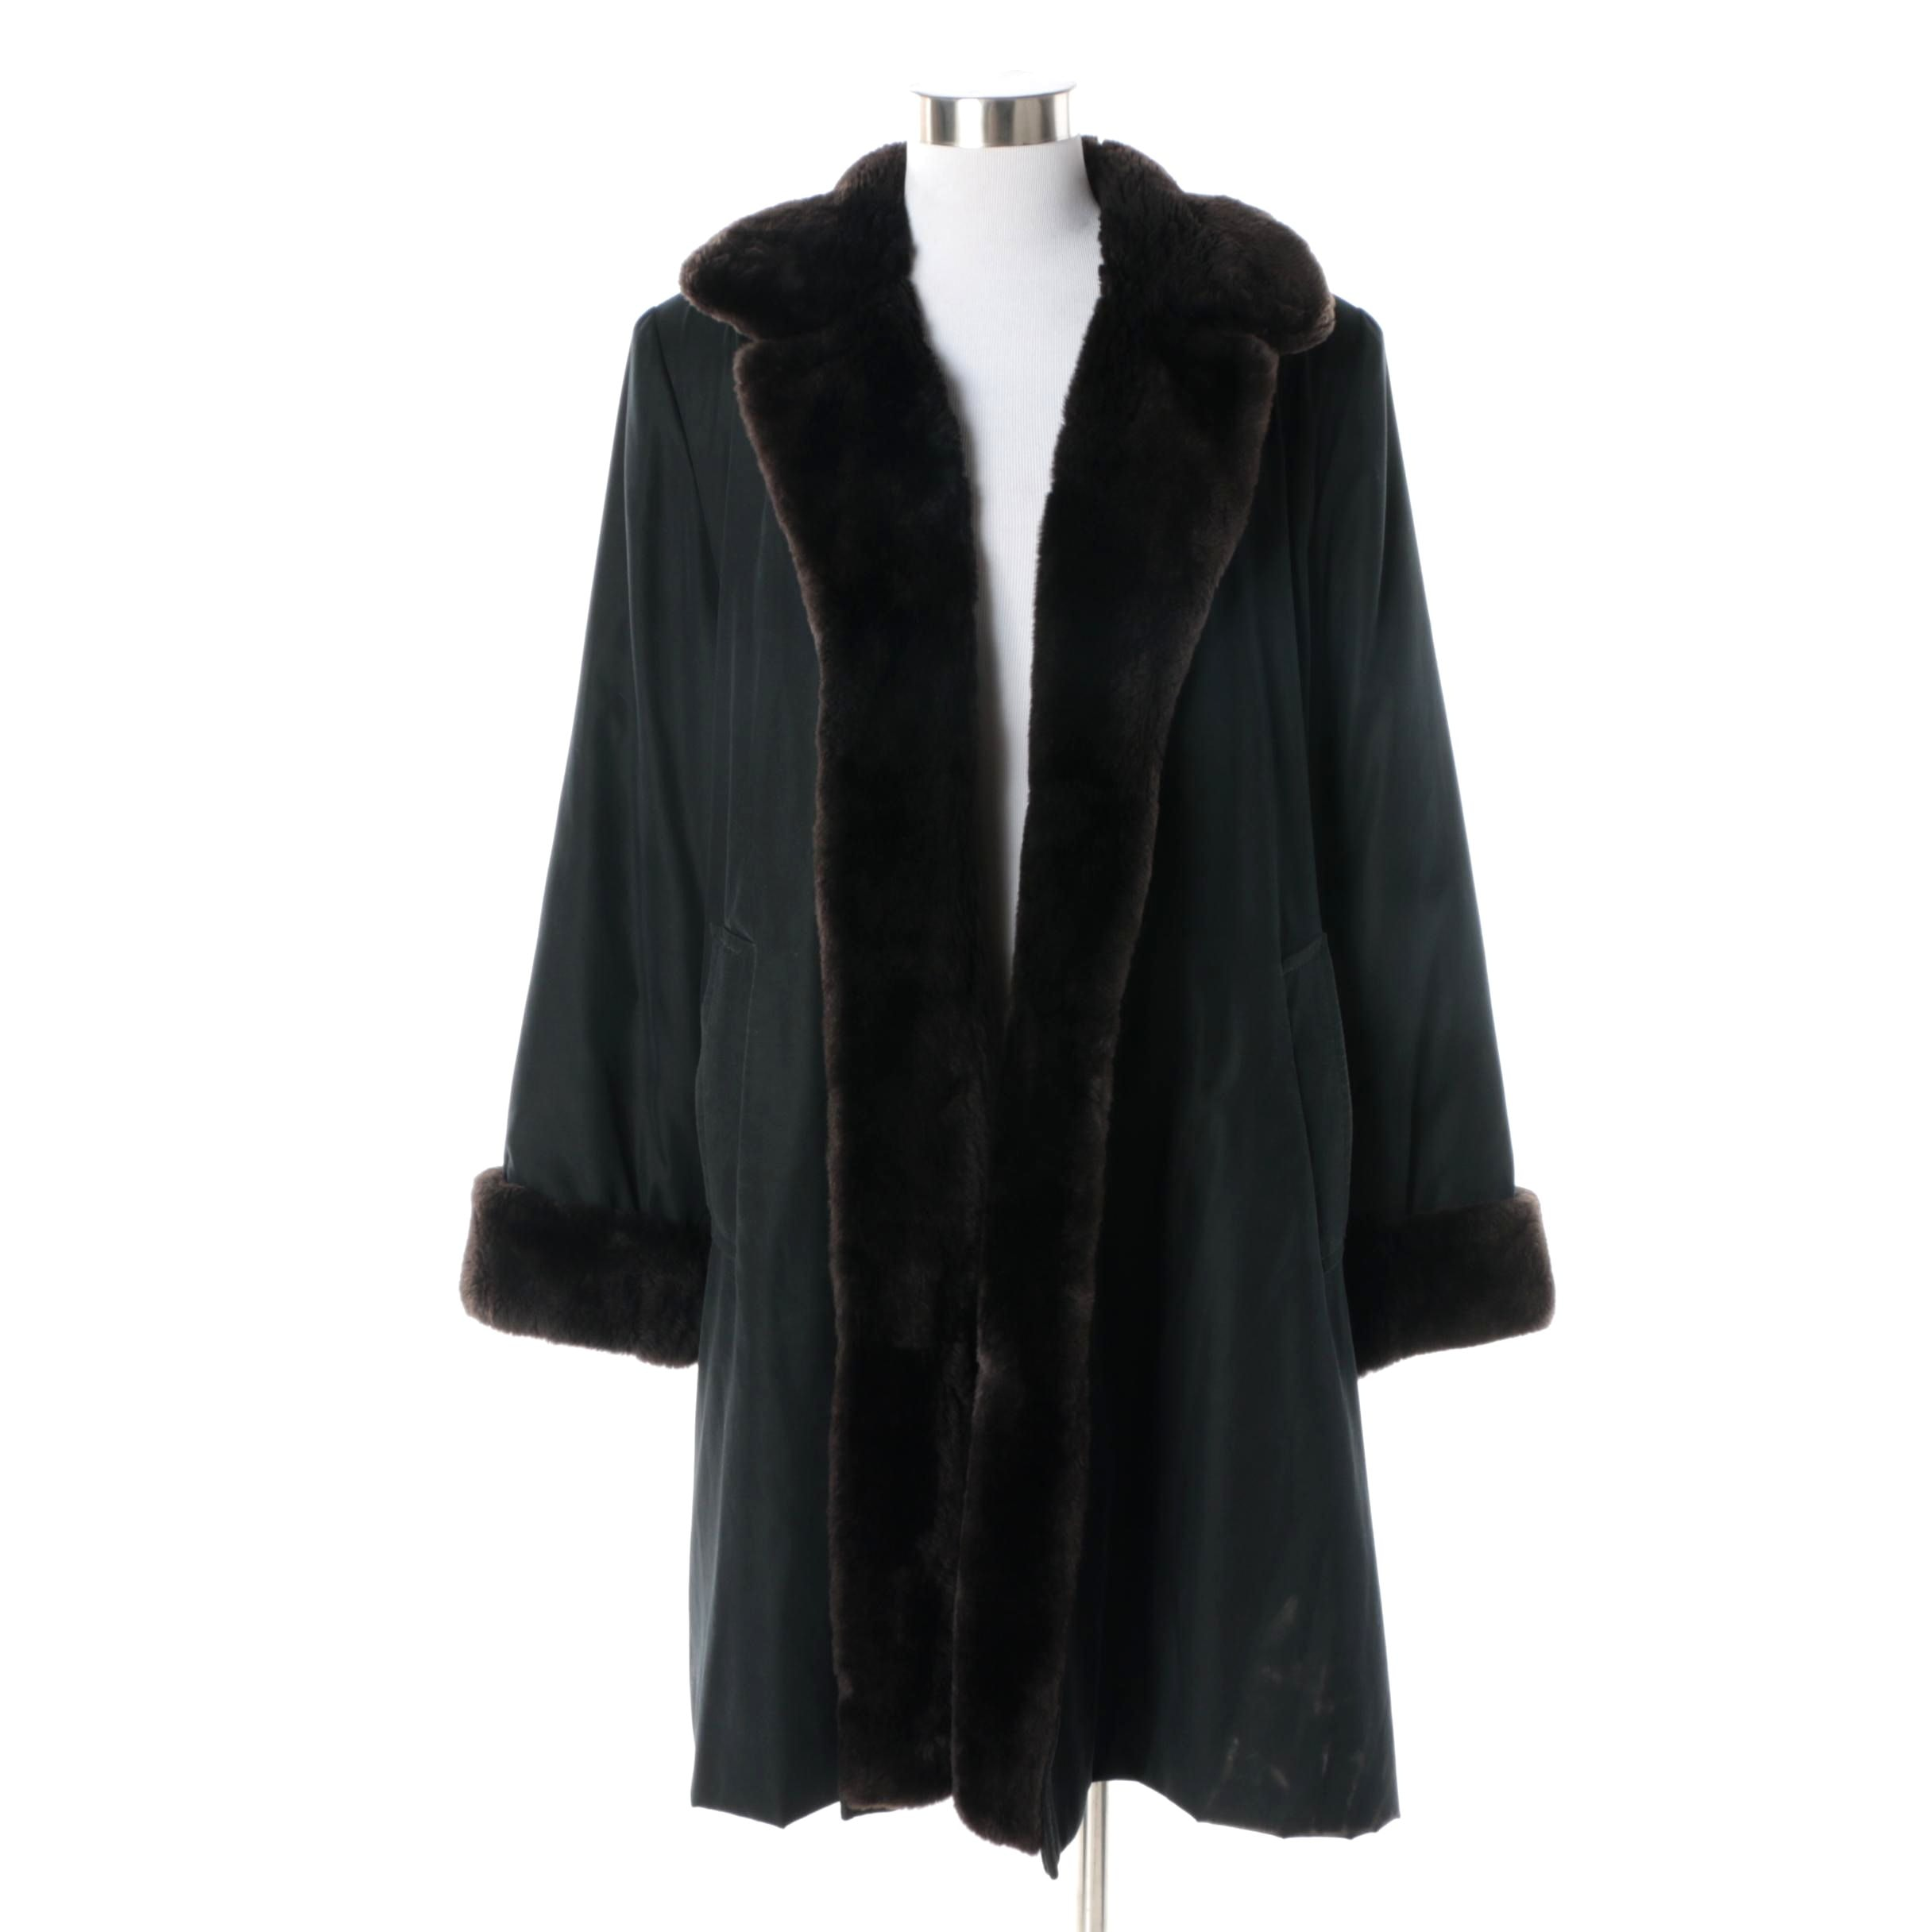 Women's Vintage Black Poly-Blend Coat with Sheared Beaver Fur Lining